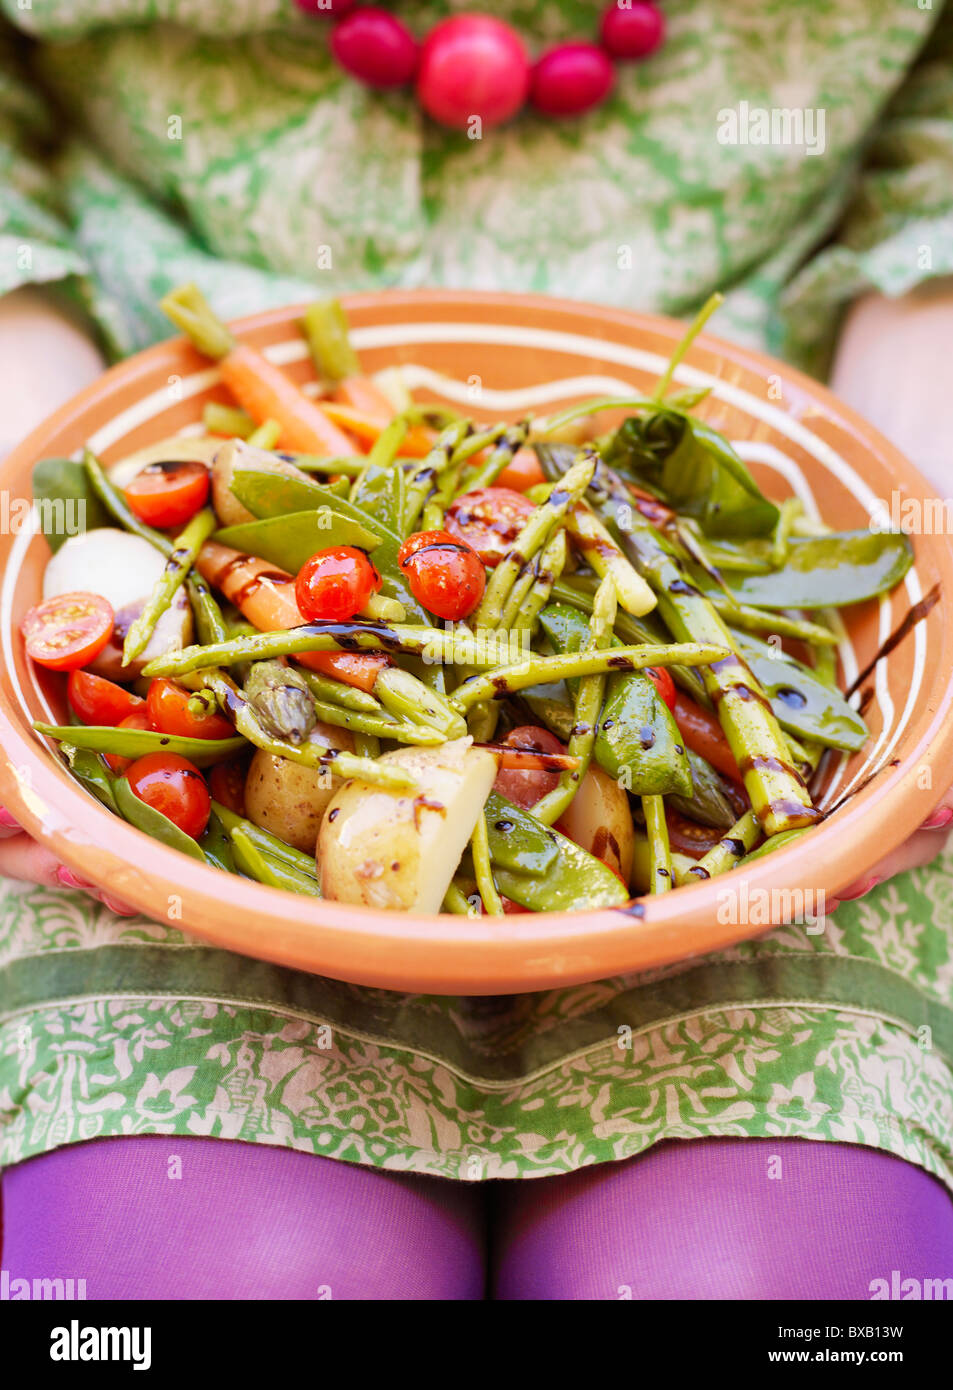 Woman holding plate of vegetable salad - Stock Image